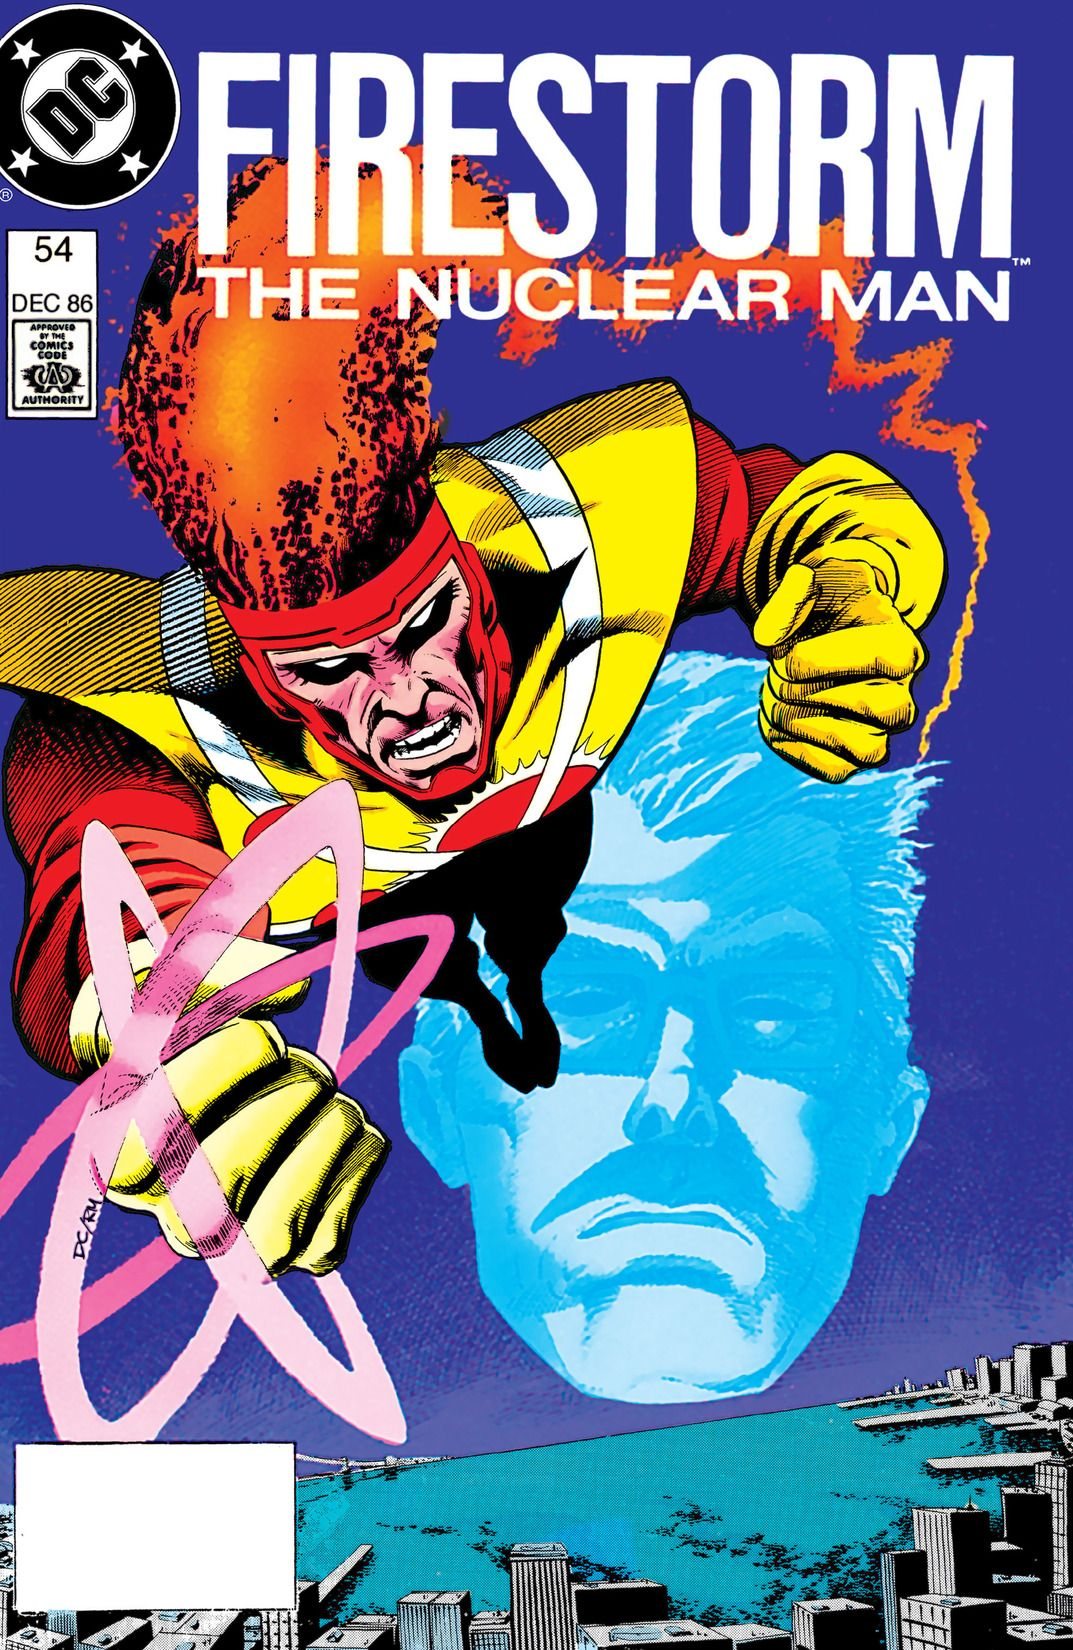 Fury of Firestorm #54 by Paul Kupperberg, Michael Bair and Robert Allen Smith; cover by Denys Cowan & Rick Magyar